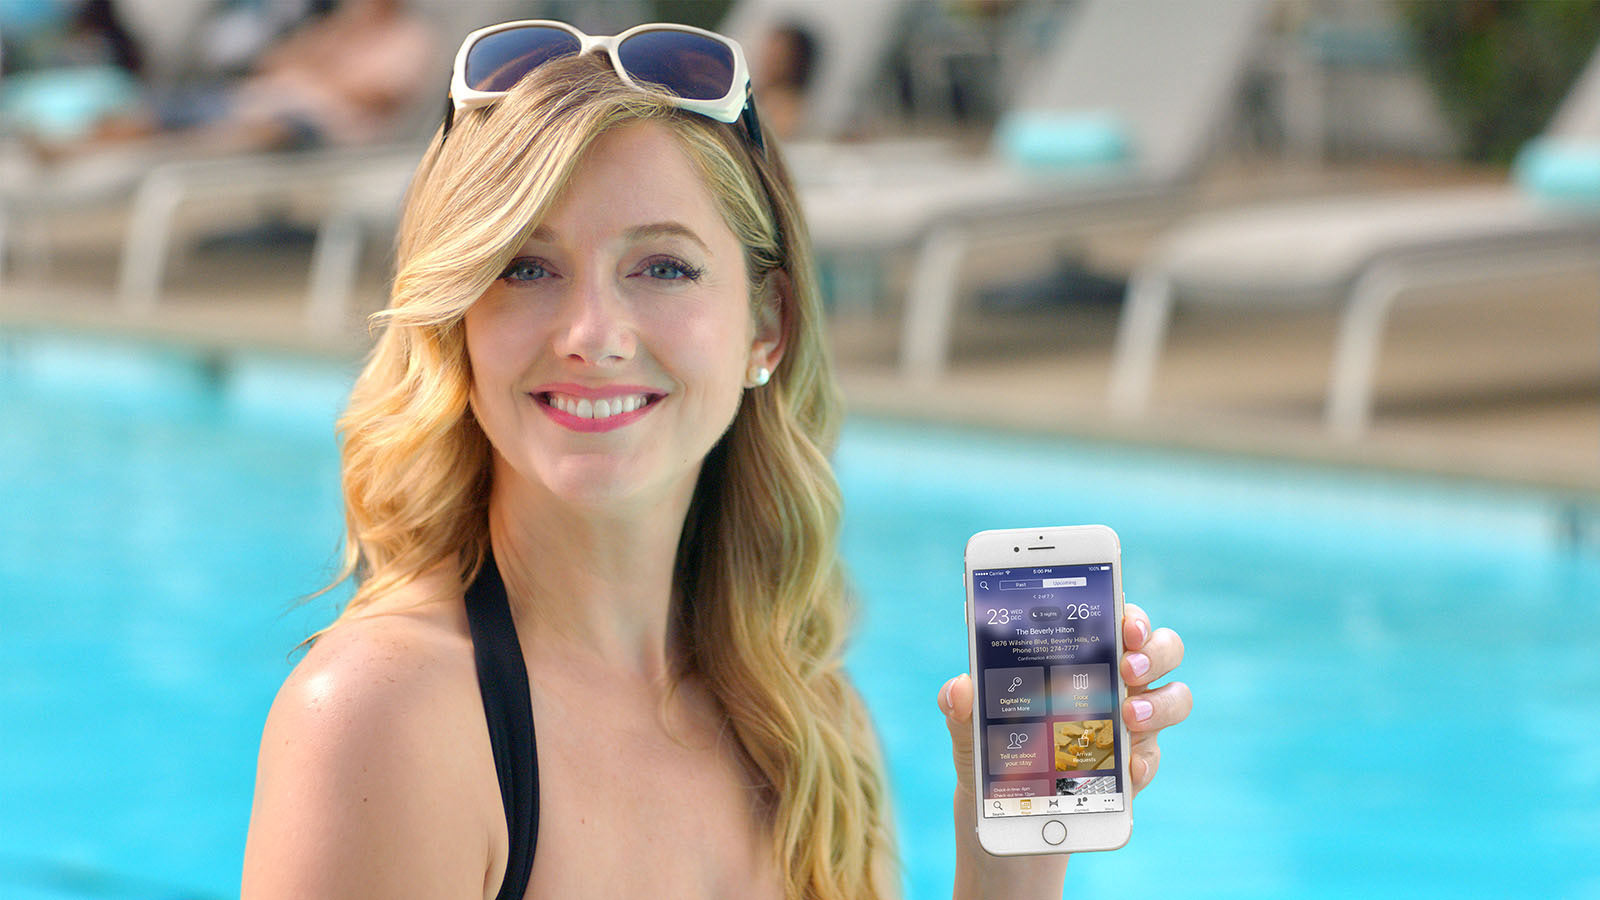 woman holding a phone next to a swimming pool